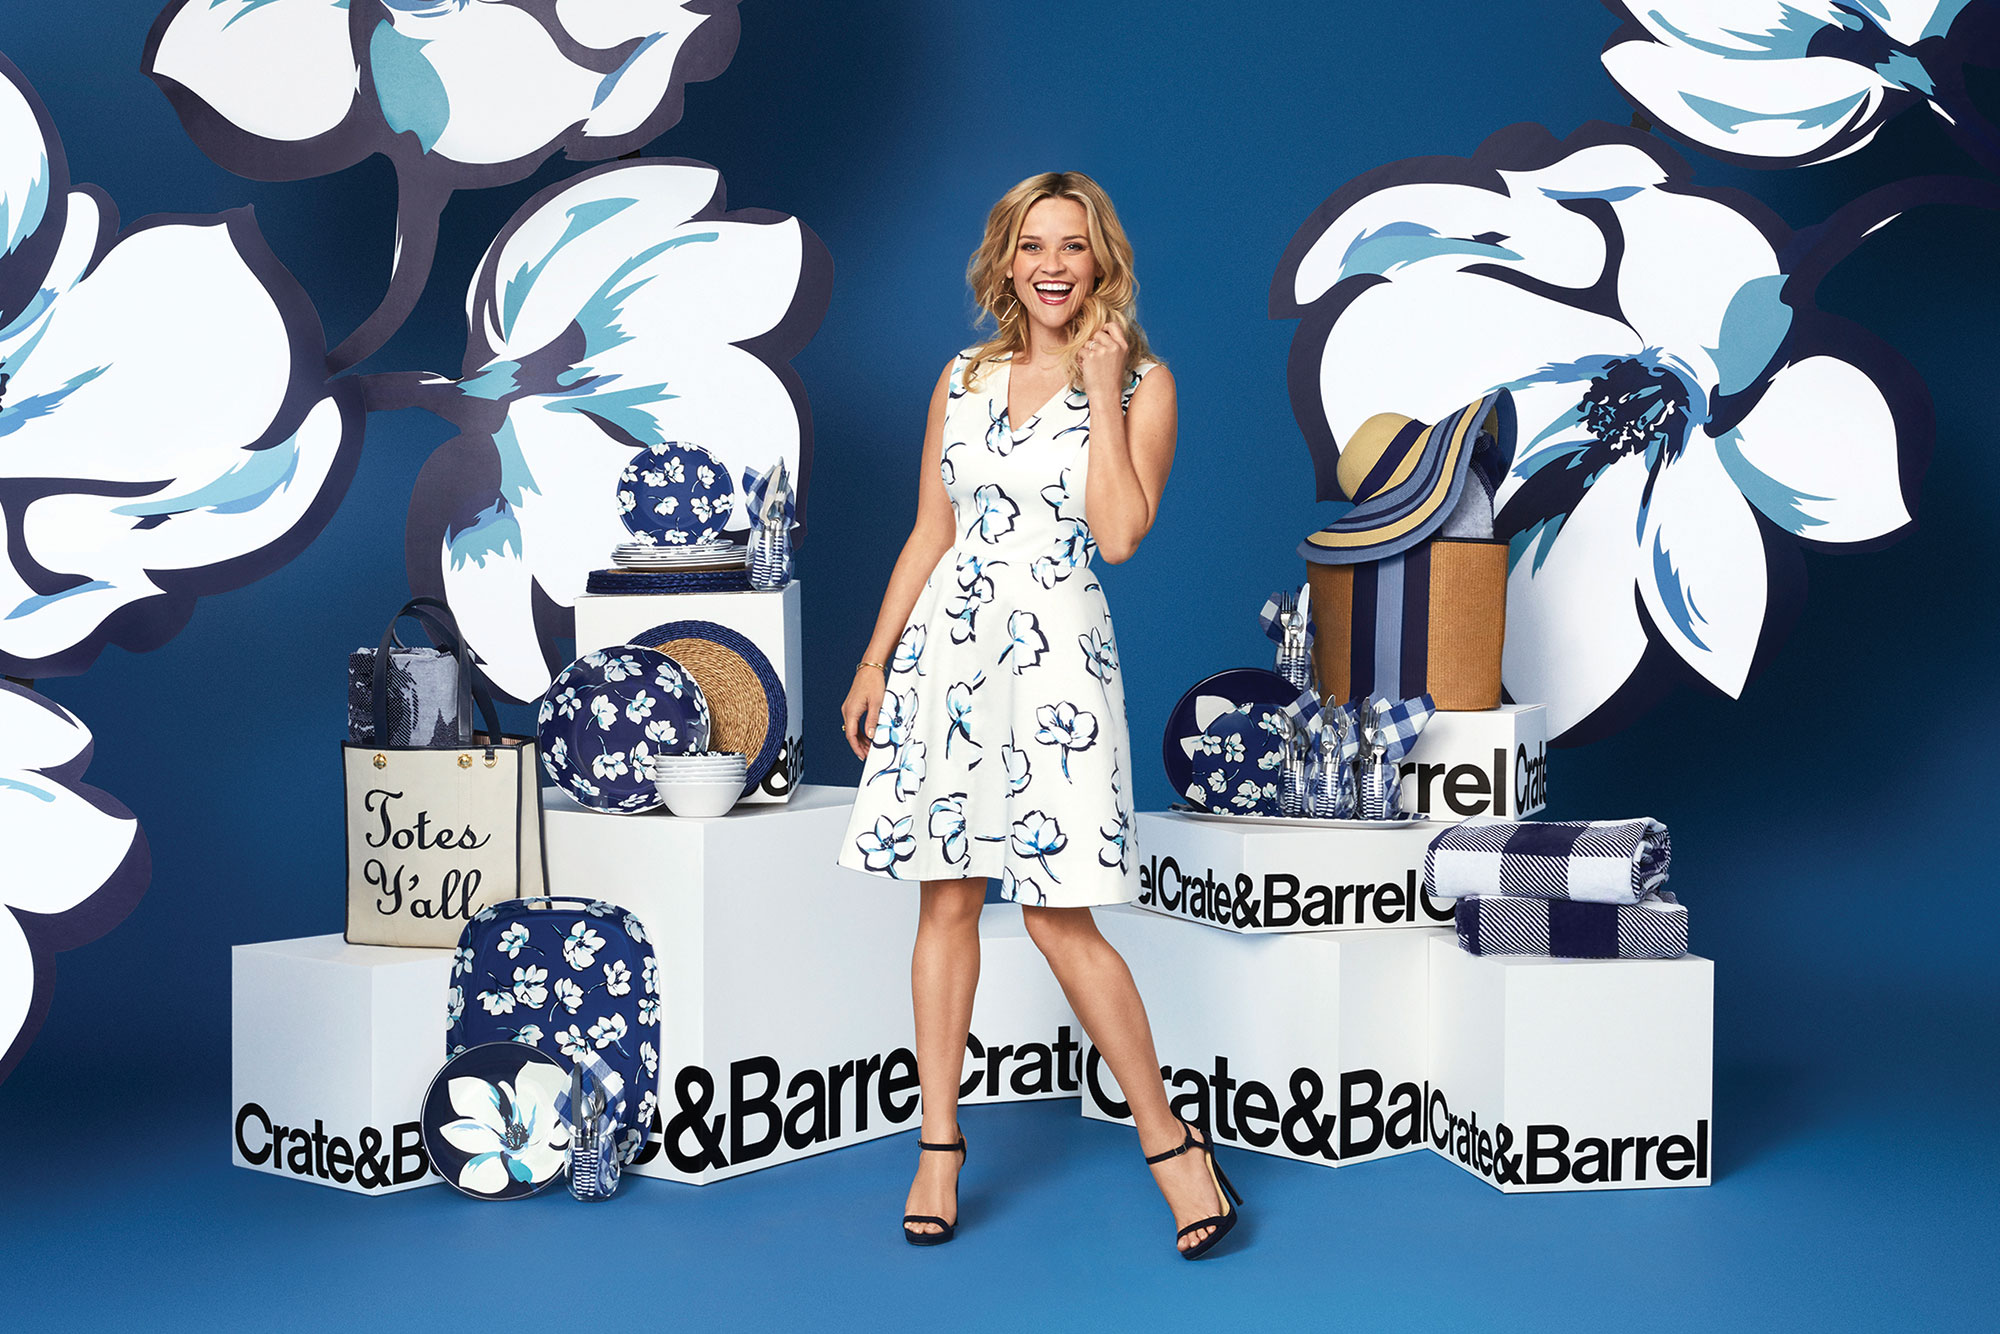 Reese Witherspoon's Draper James x Crate & Barrel Collab Will Give Your Home 'Southern Flair' reese-witherspoon-draper-james-crate-barrel